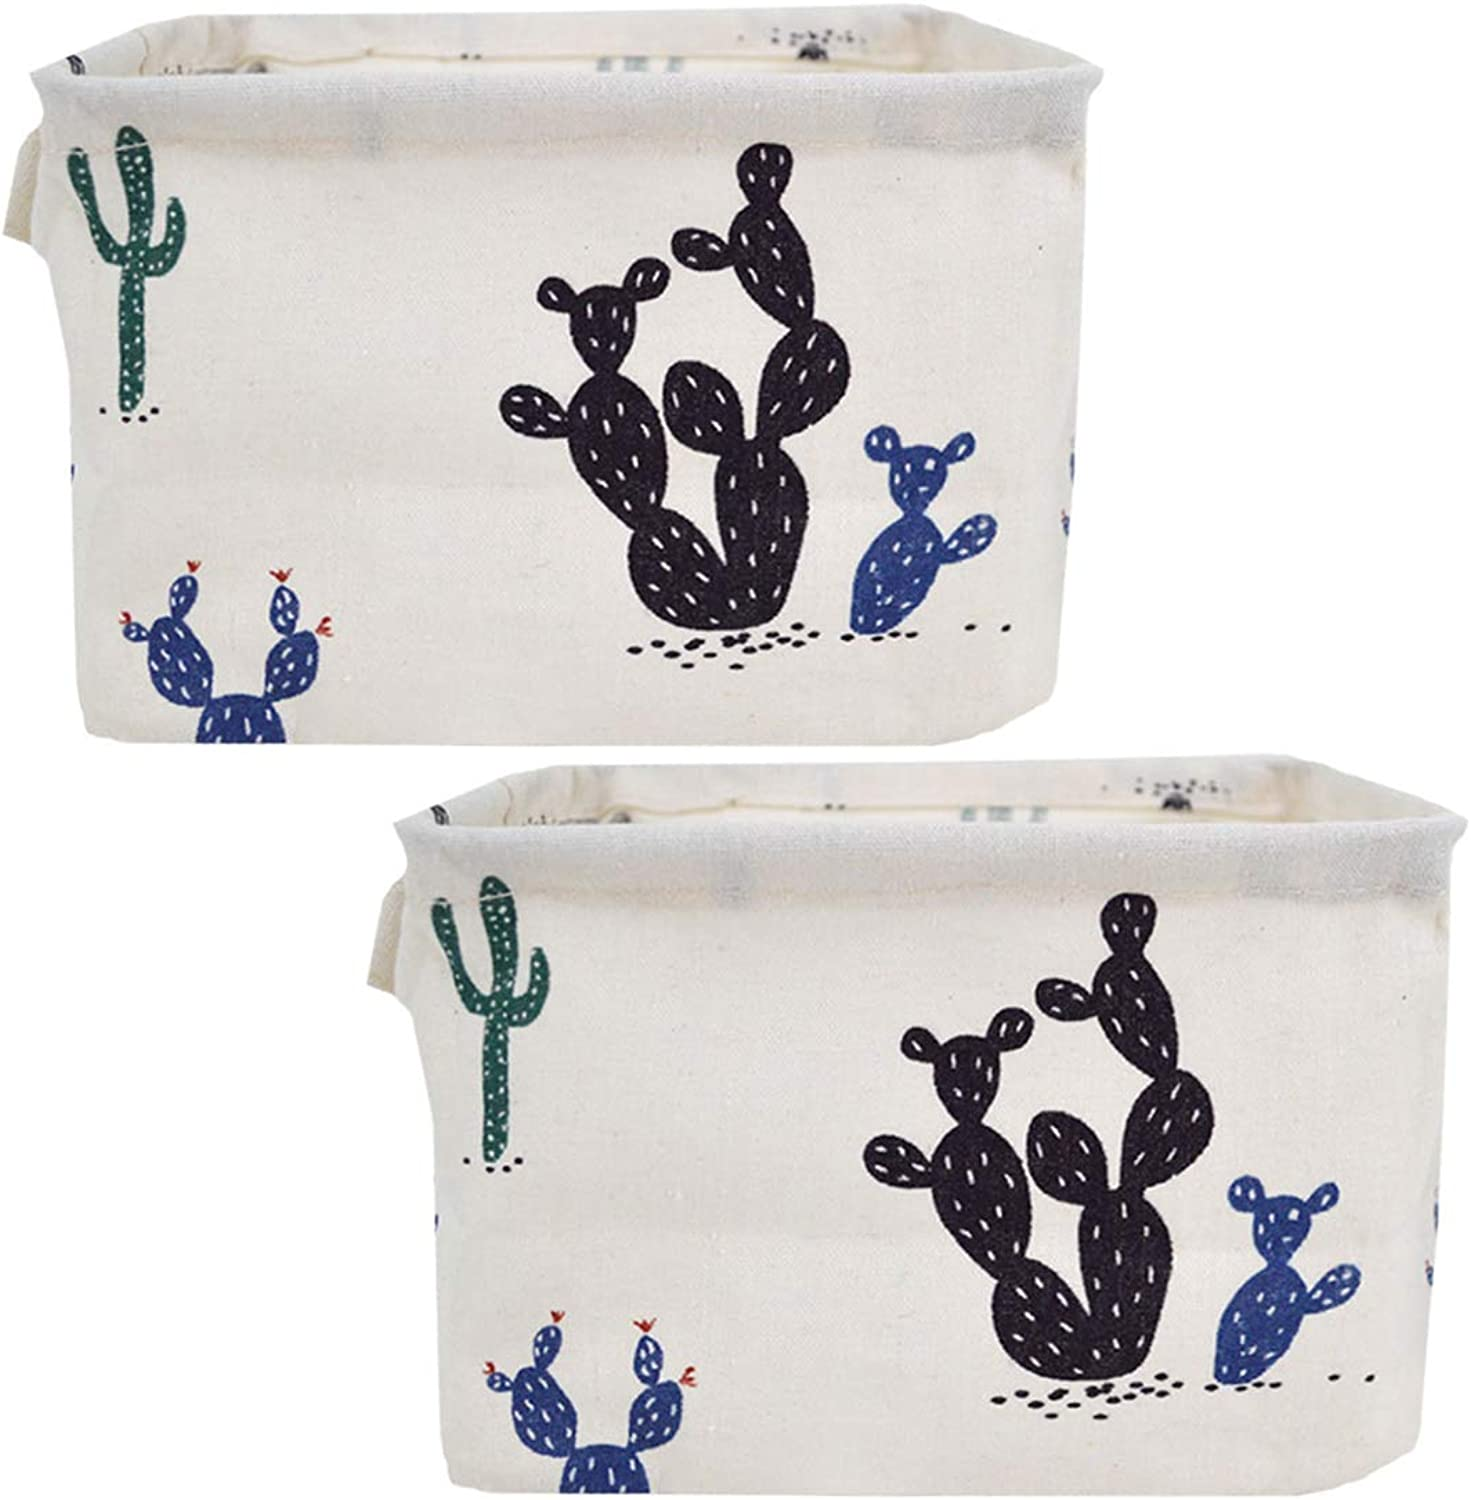 Danse Jupe 2 Pack Small Foldable Storage Bins Baskets Home Decor Cartoon Cloth Storage Box Organizers for Baby Toys,Stationery,Office Supplies(Black Cactus)